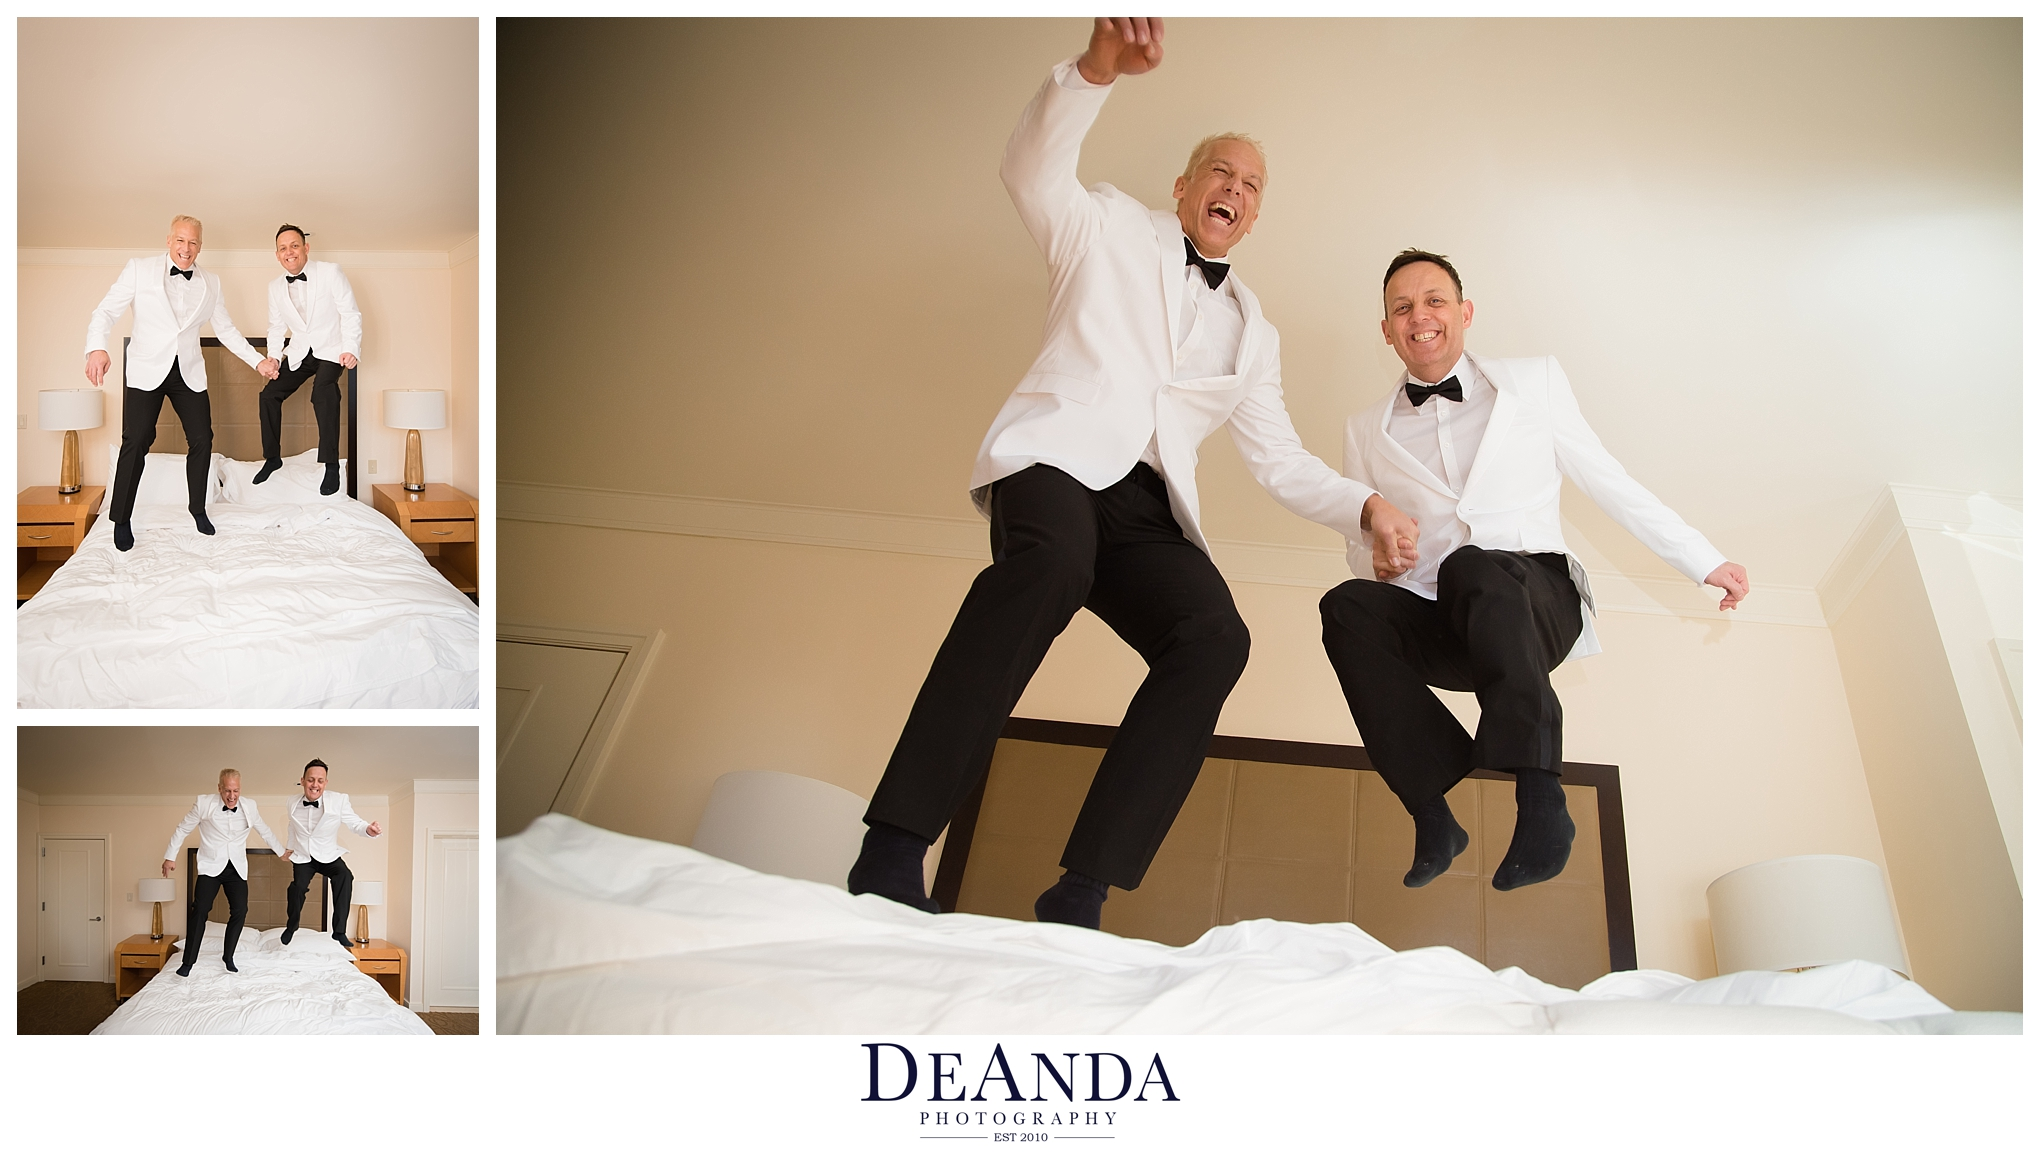 fun photo of gay couple married jumping on bed